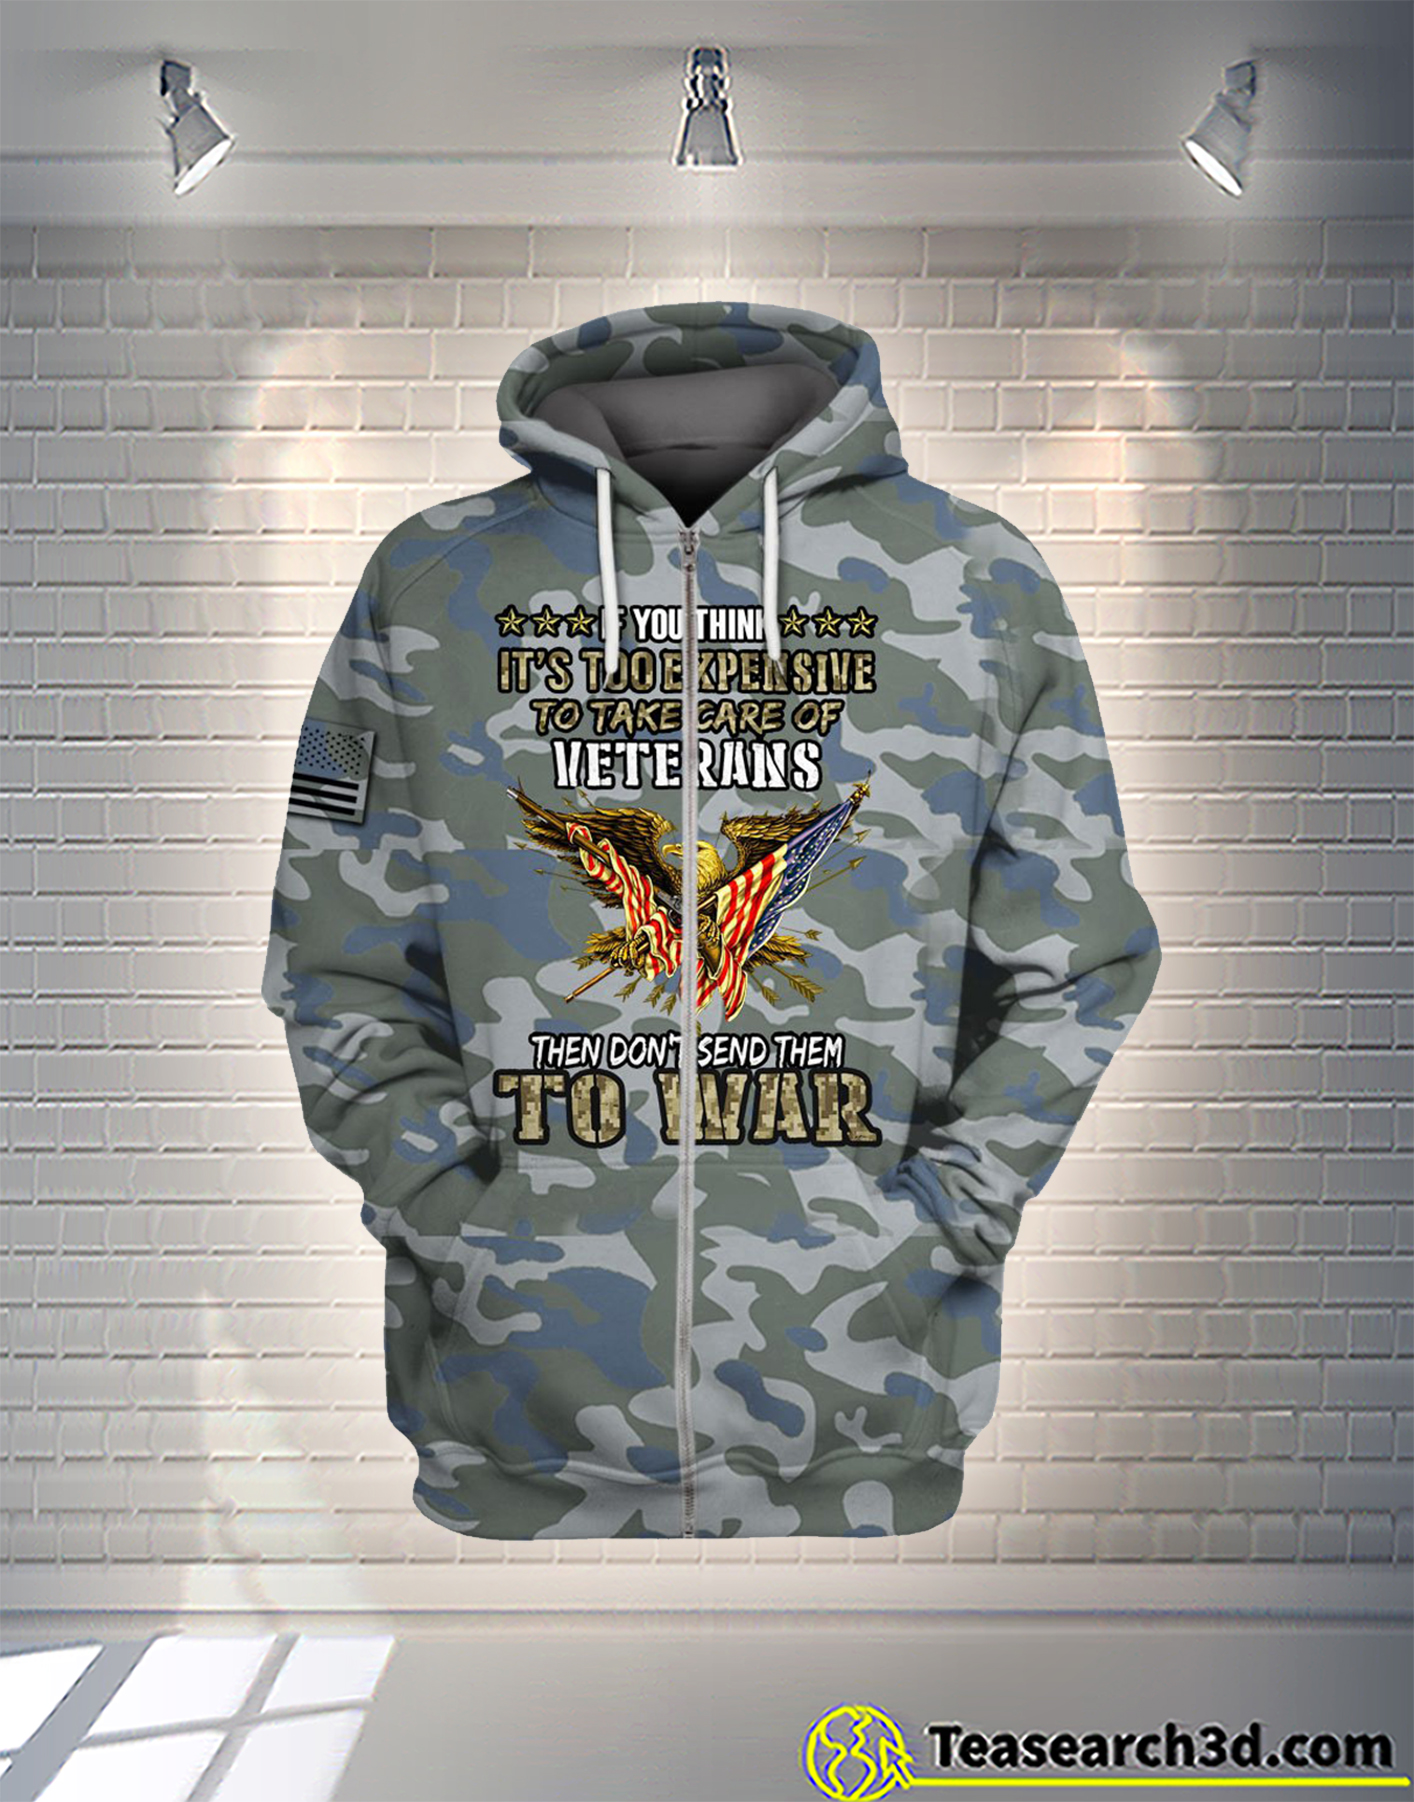 You think it's to expensive to take care of veterans camo all over printed zip hoodie